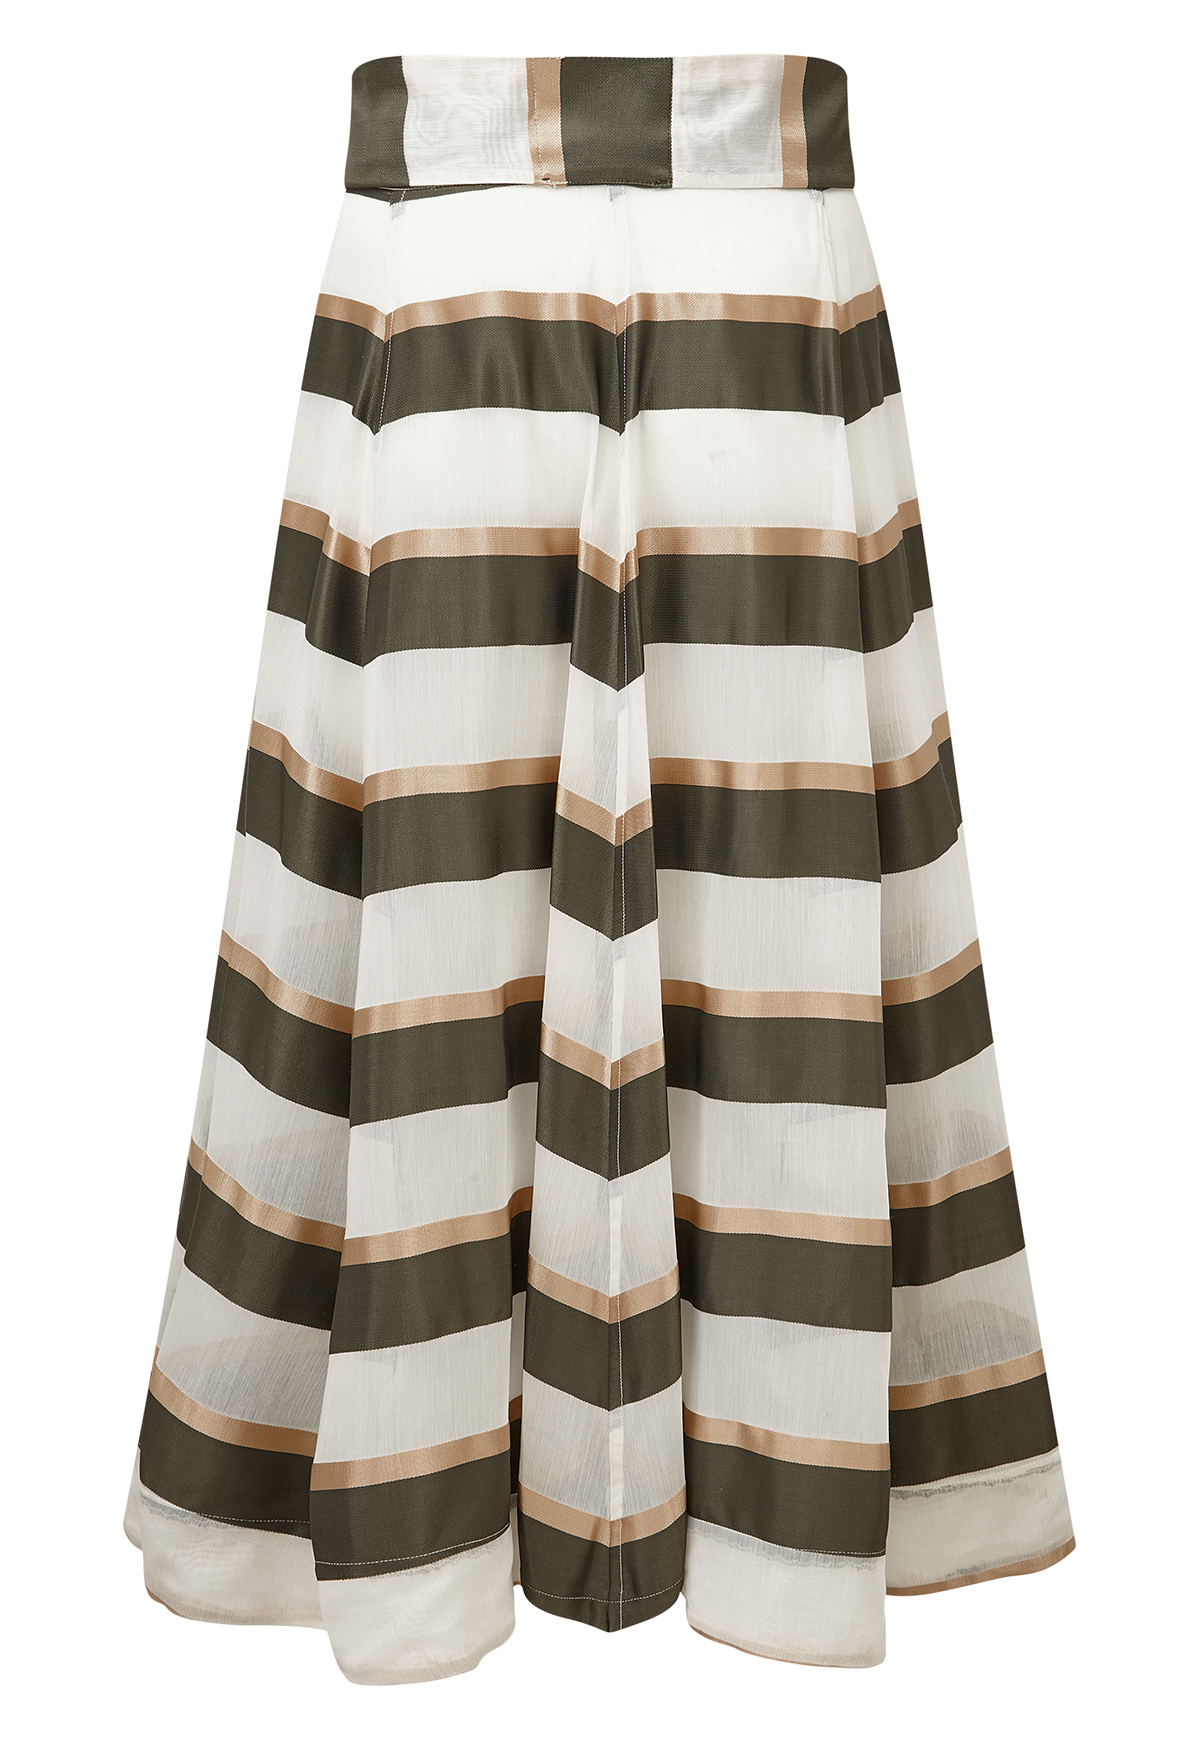 OLIVE AND GOLD STRIPE BEACH SKIRT